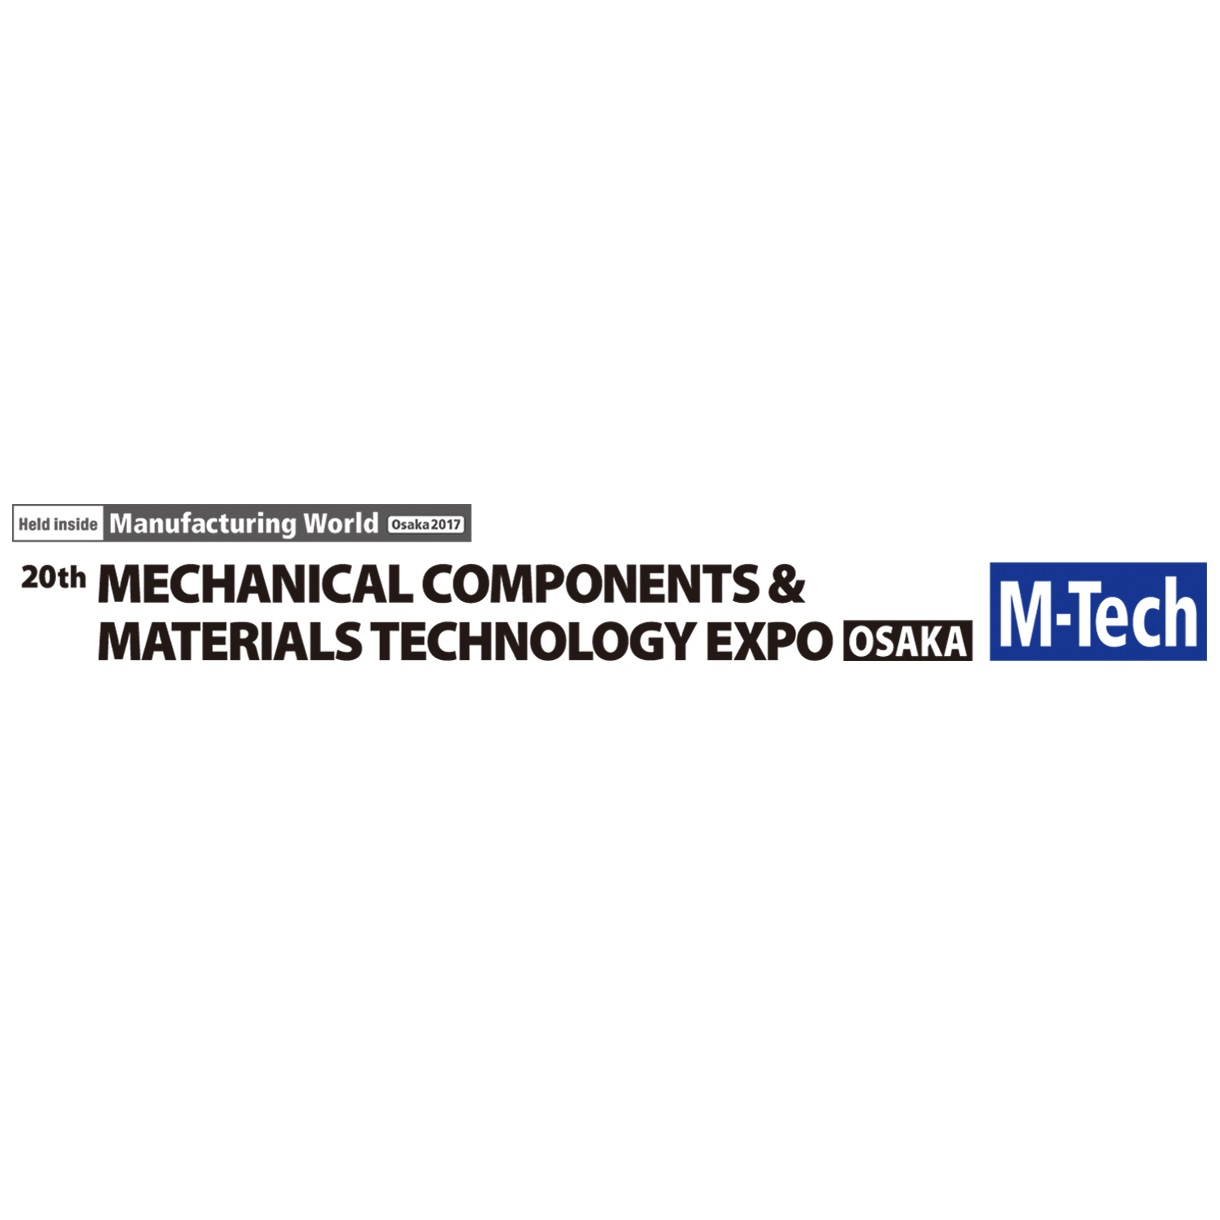 2017 Mechanical Components & Materials Technology Expo (M-Tech)